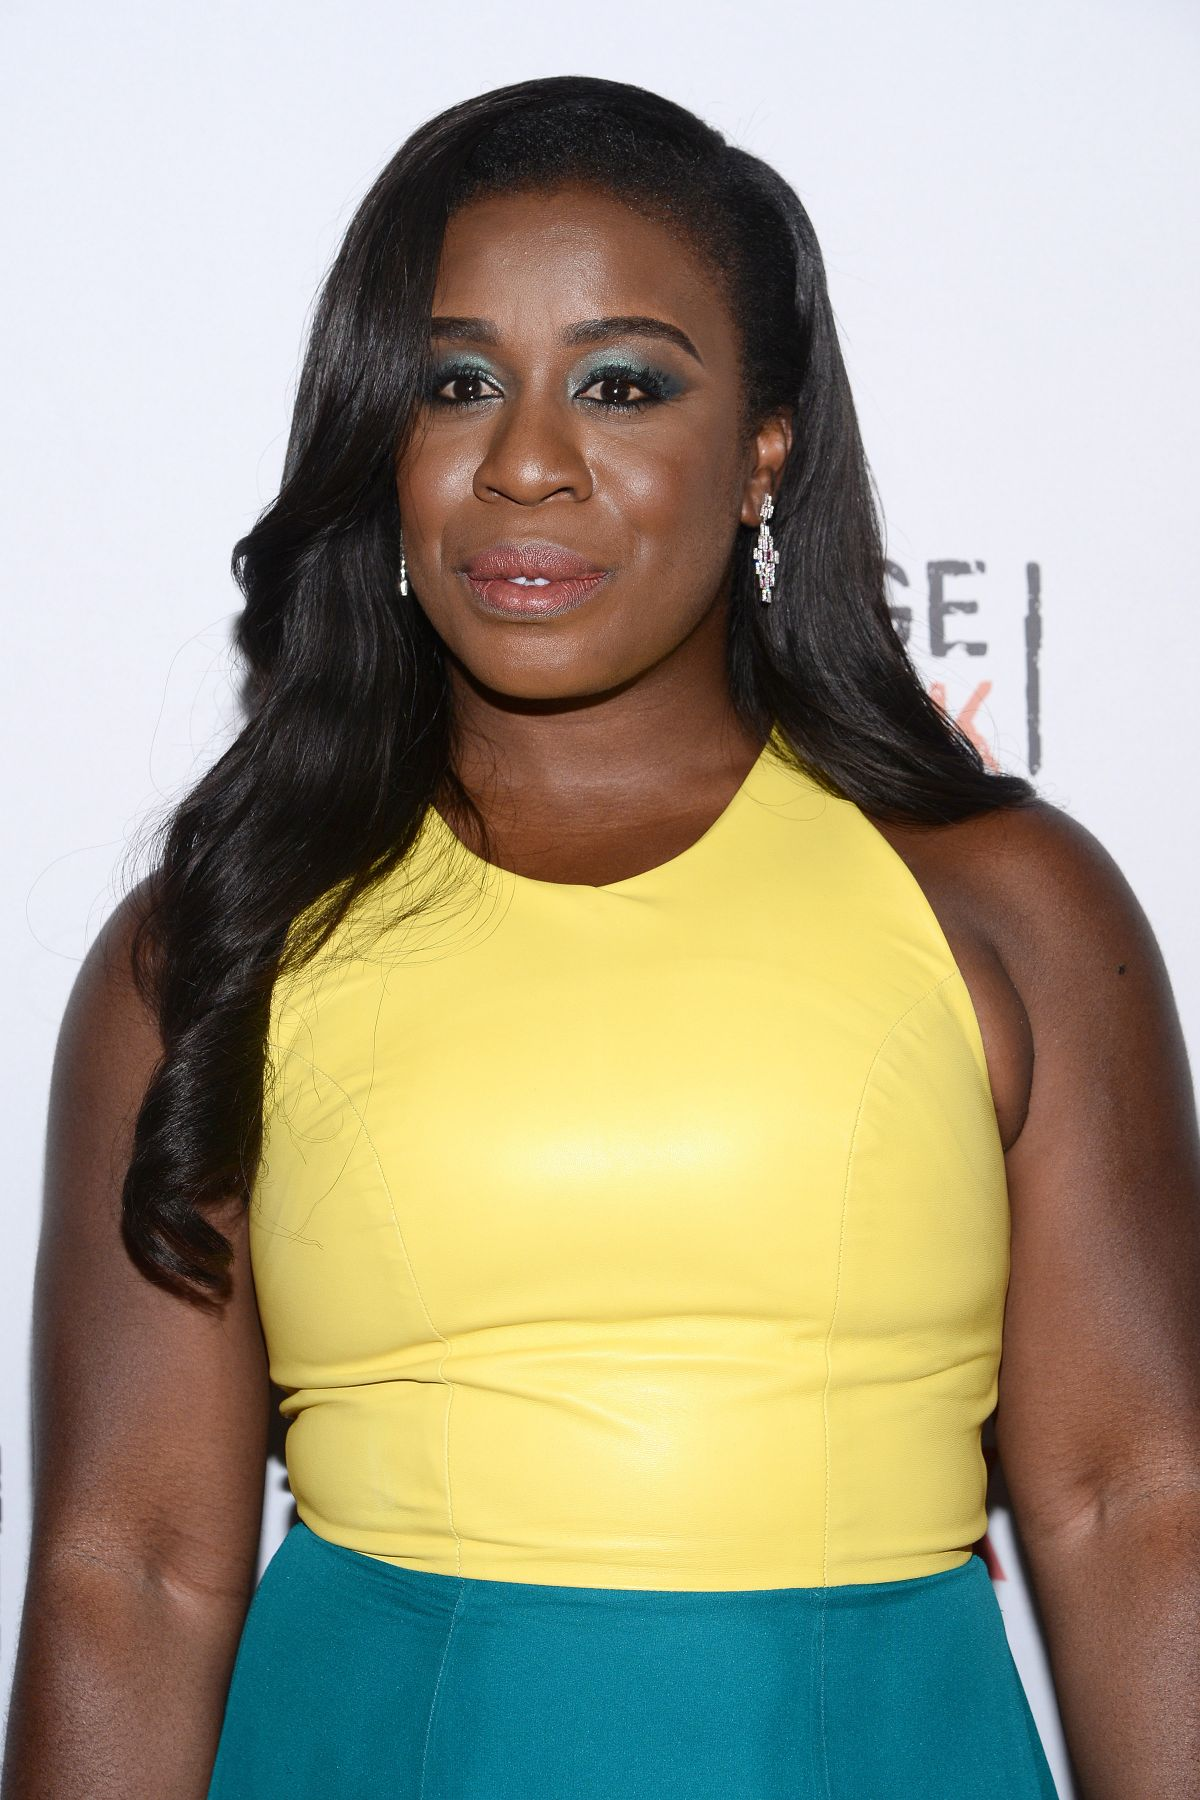 UZO ADUBA at Orangecon Fan Event in New York